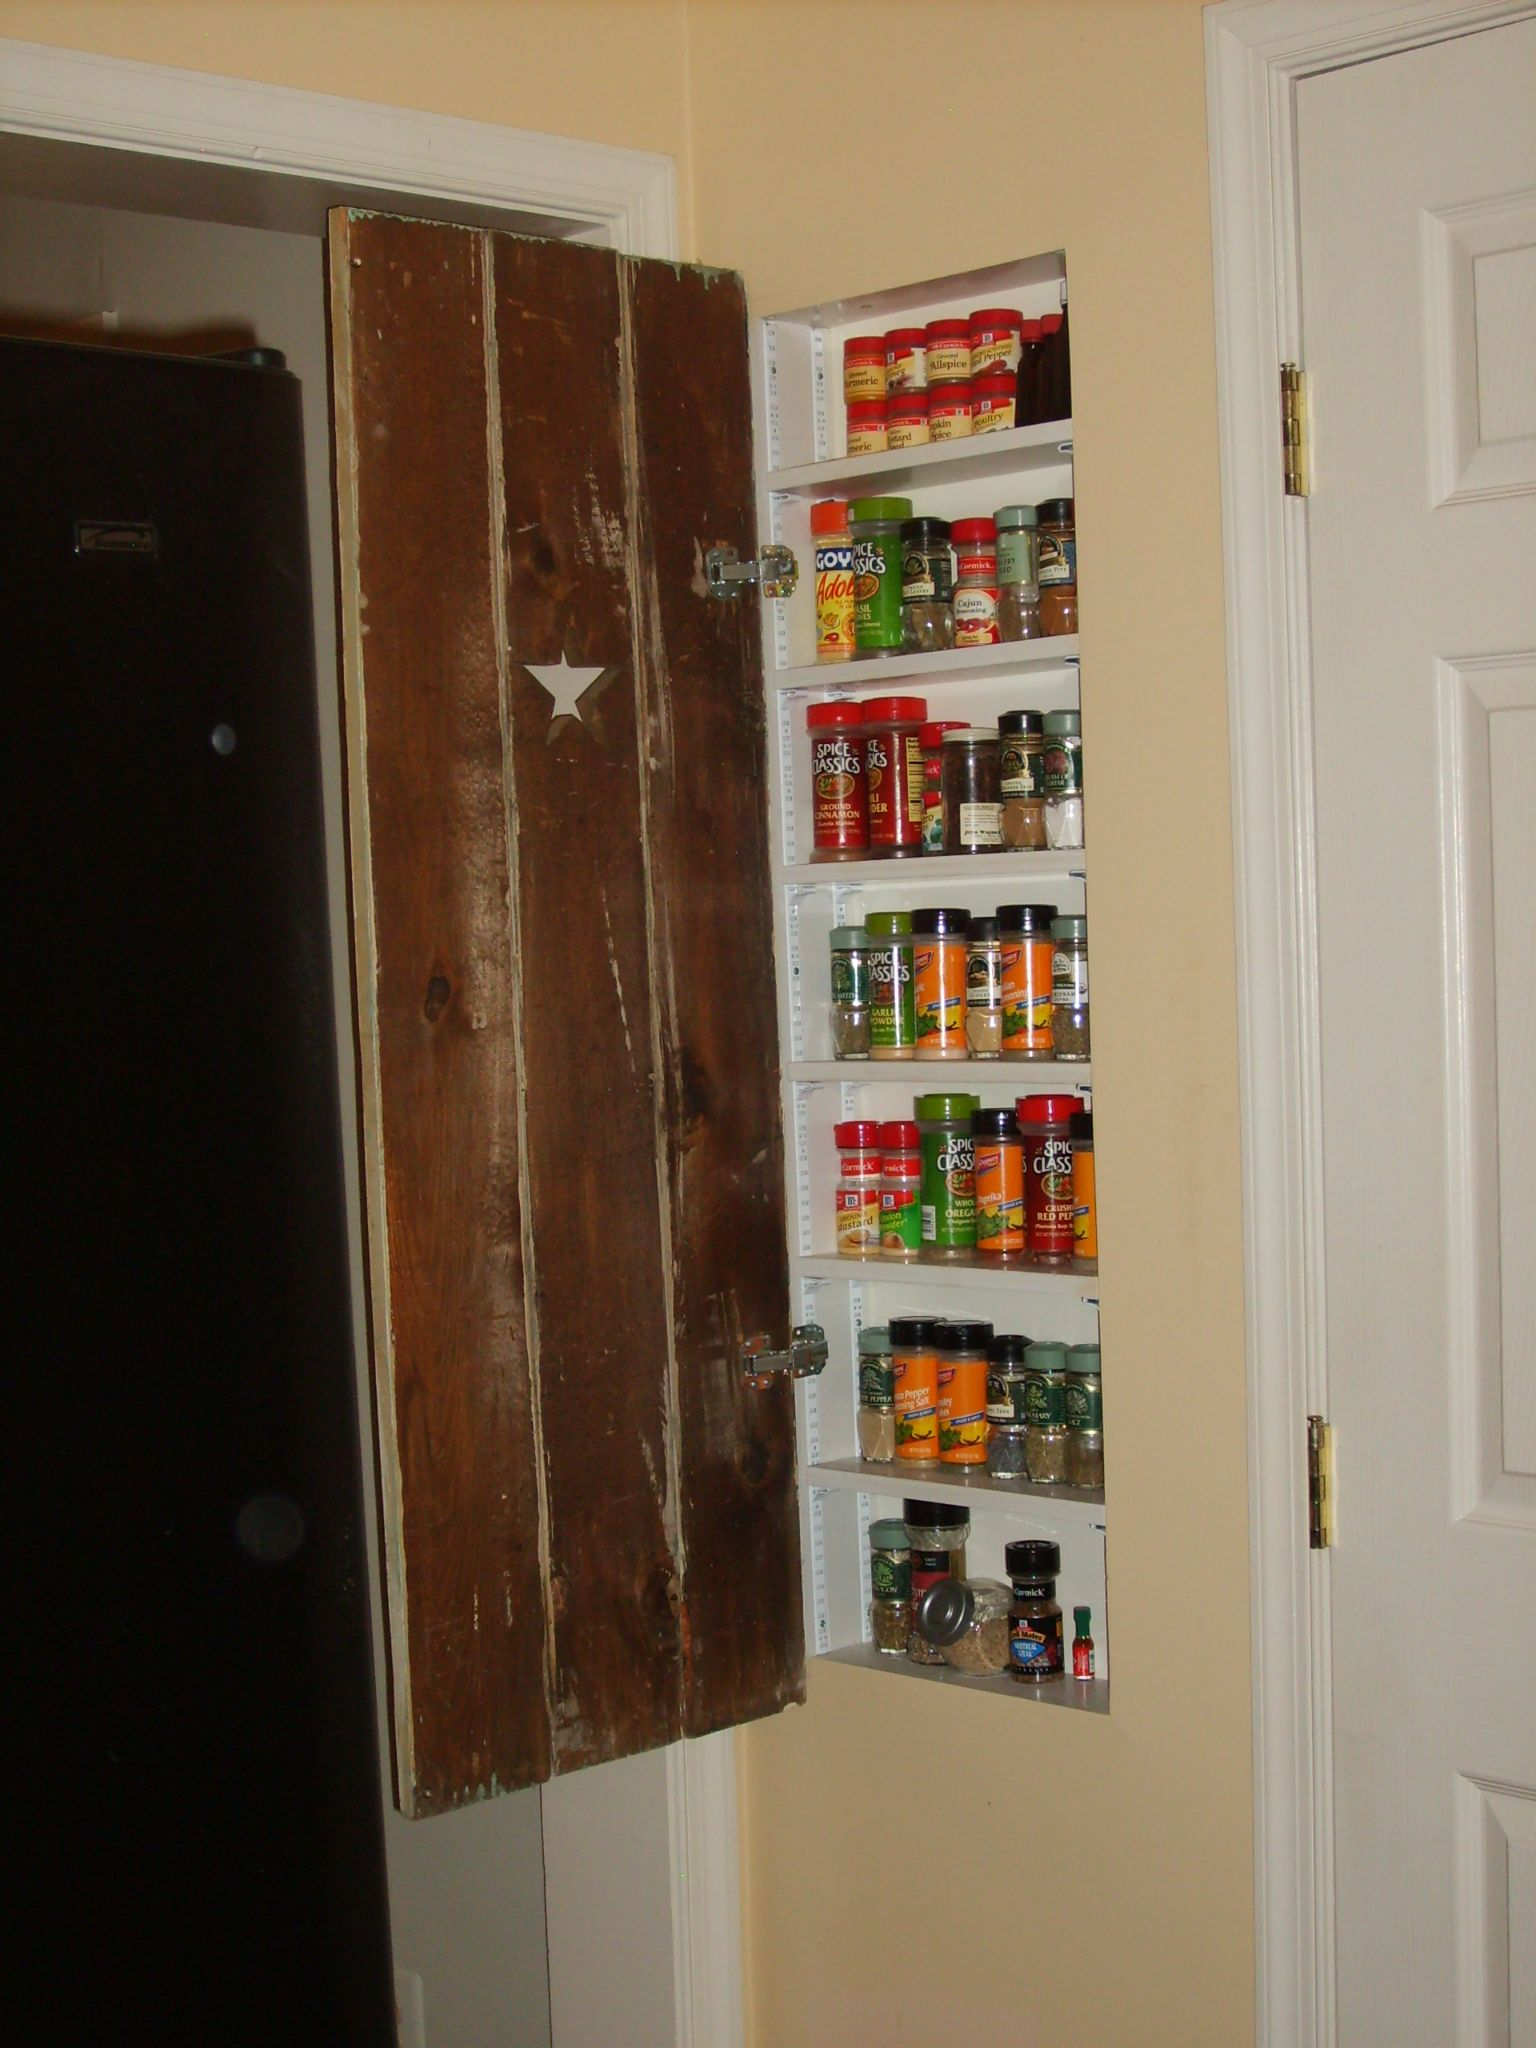 Good Use Of Space Between Studs In Wall Spice Rack For The Kitchen Kitchen Wall Shelves Pantry Cabinet Kitchen Pantry Cabinets